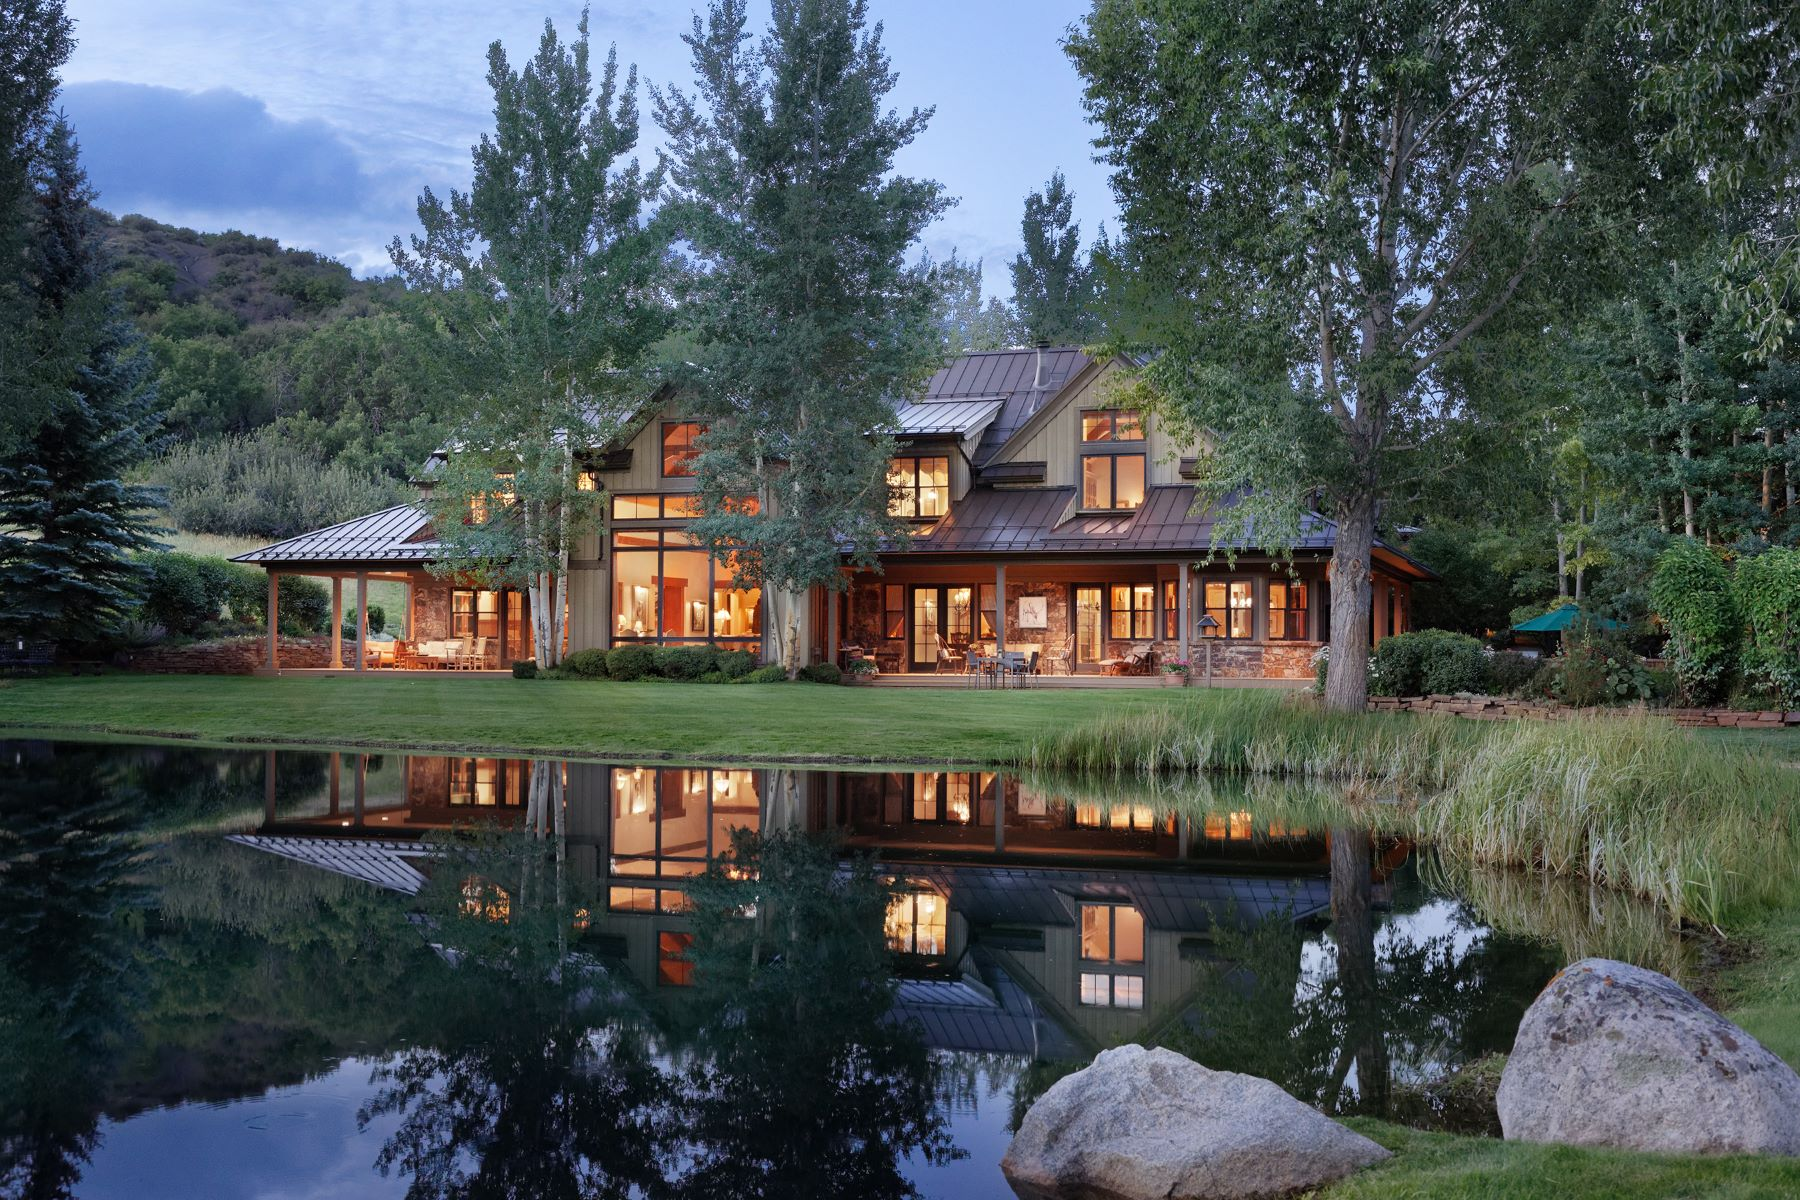 Casa Unifamiliar por un Venta en Owl Creek 1214 Owl Creek Ranch Road Aspen, Colorado 81611 Estados Unidos